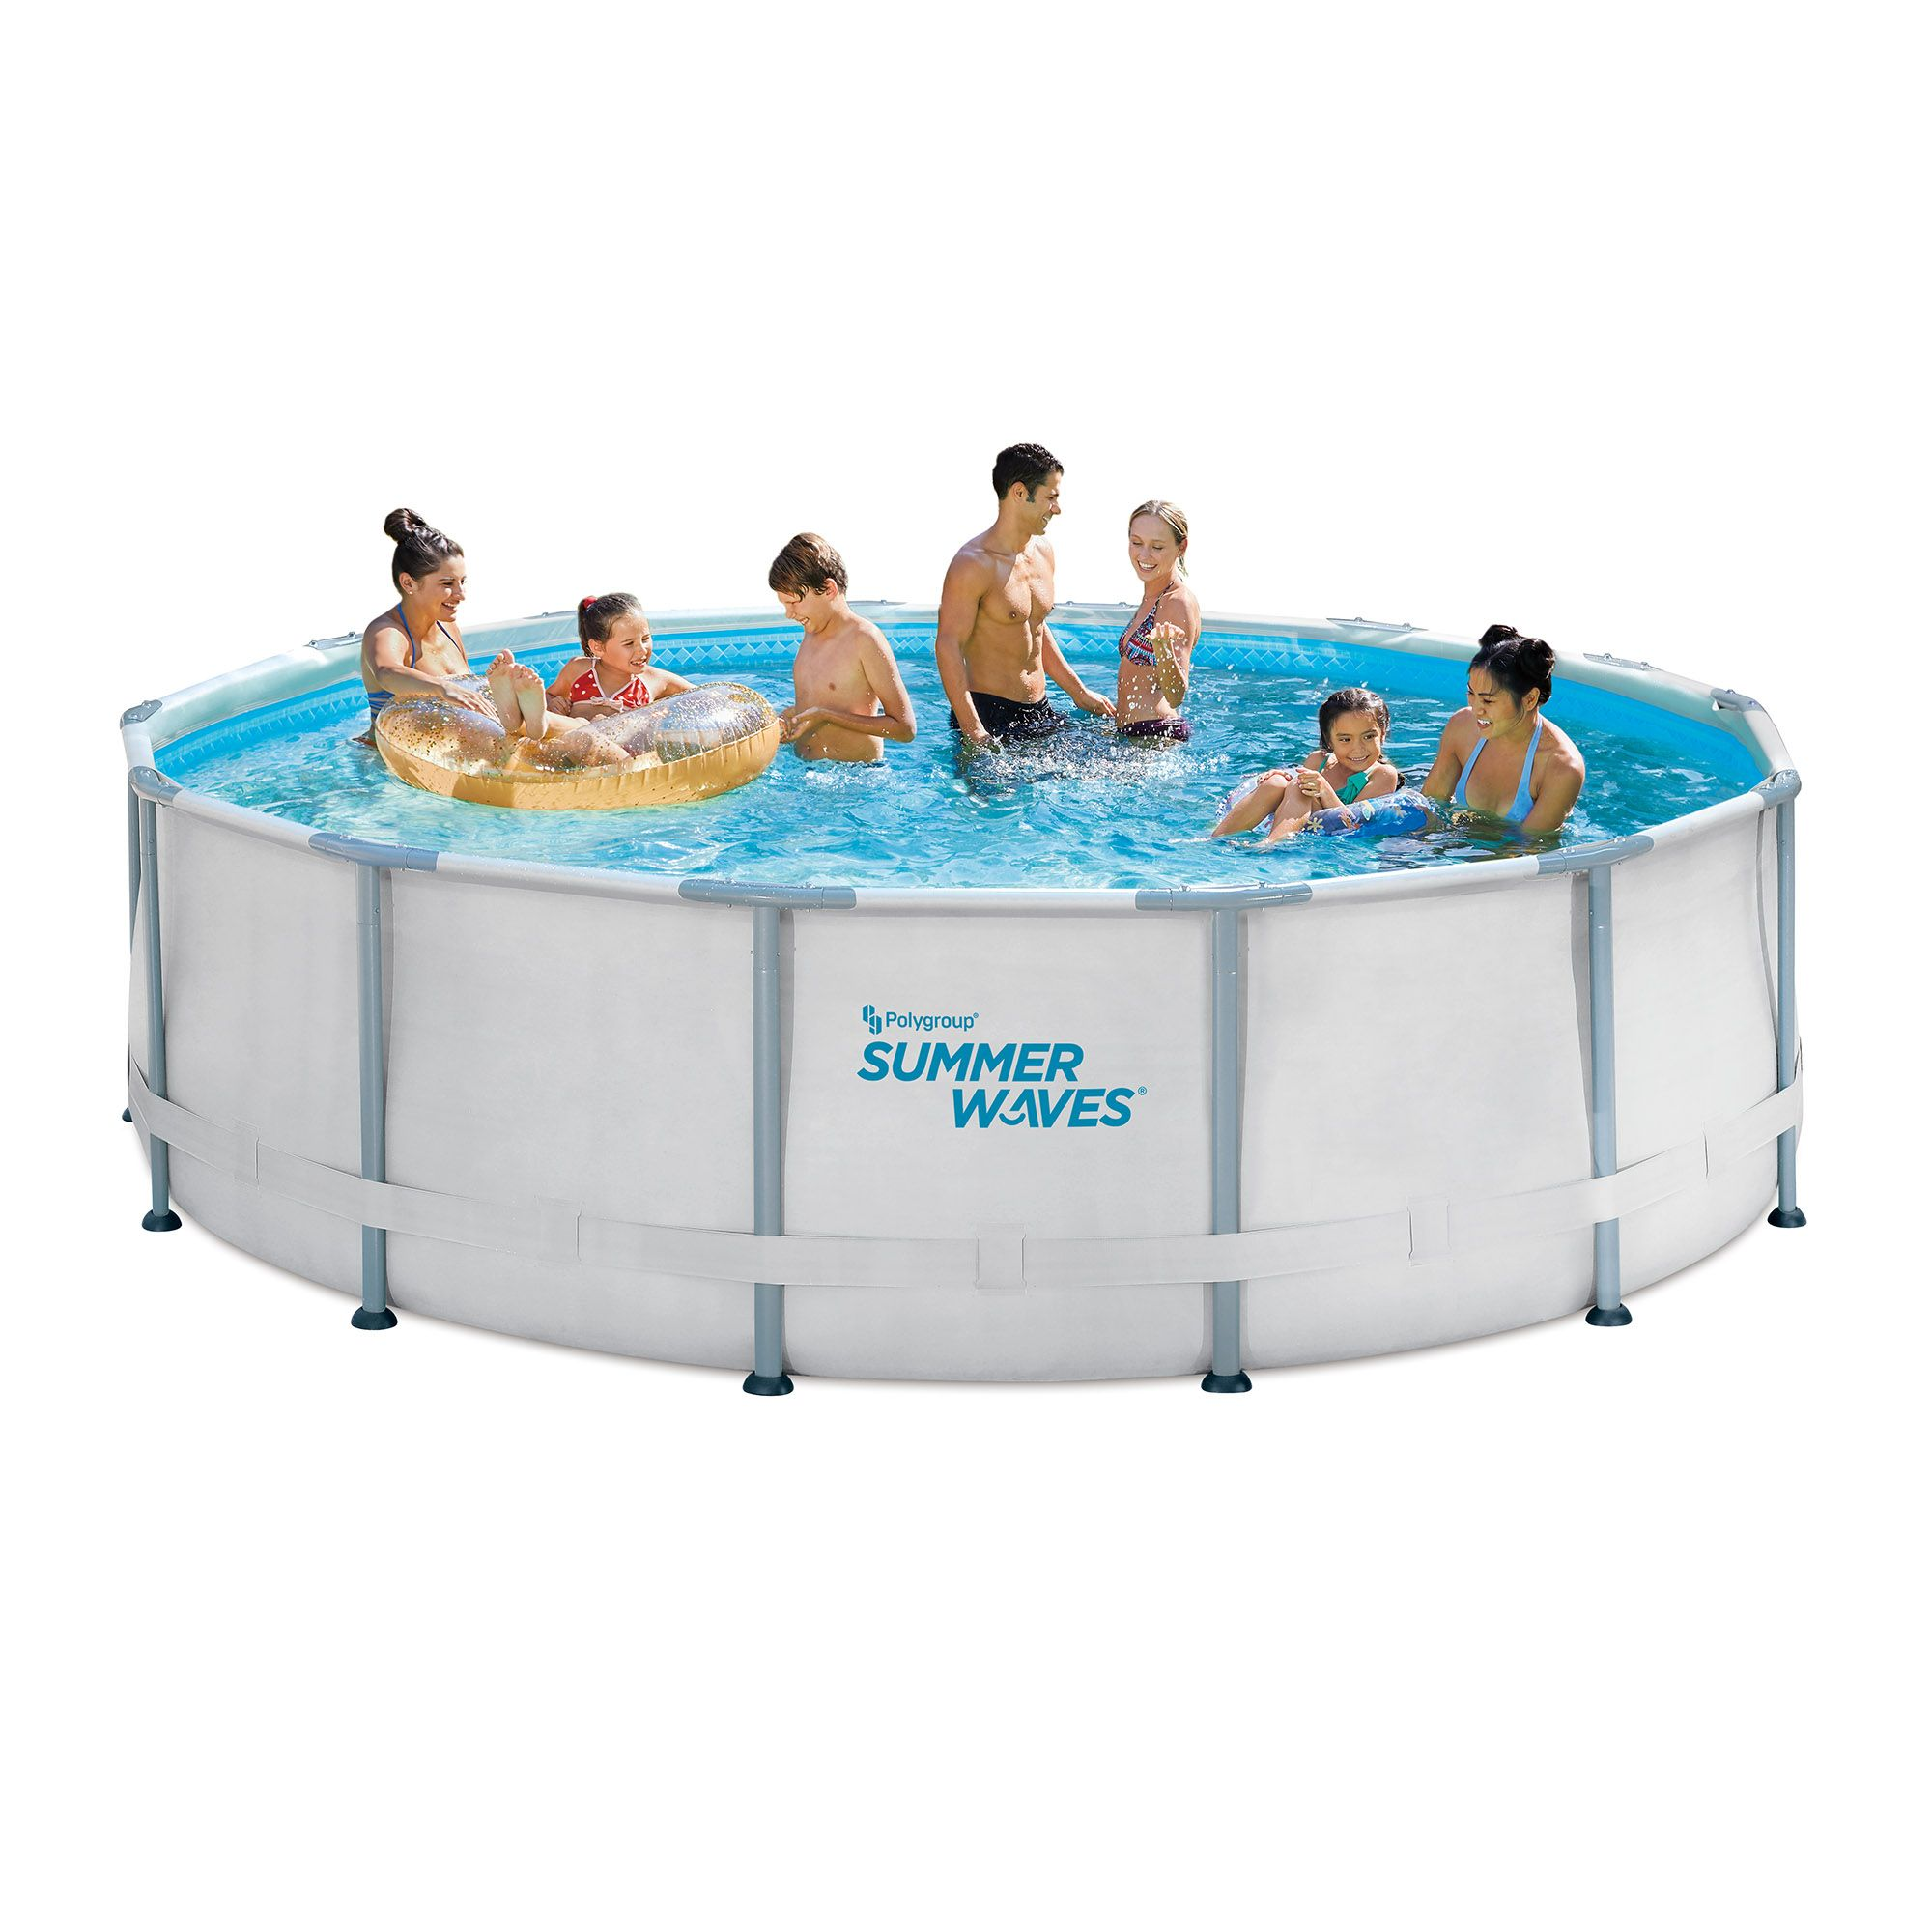 Summer Waves 14ft Elite Frame Pool With Filter Pump Cover And Ladder Walmart Com In 2020 Summer Waves Pool Cover Roller Swimming Pool Liners